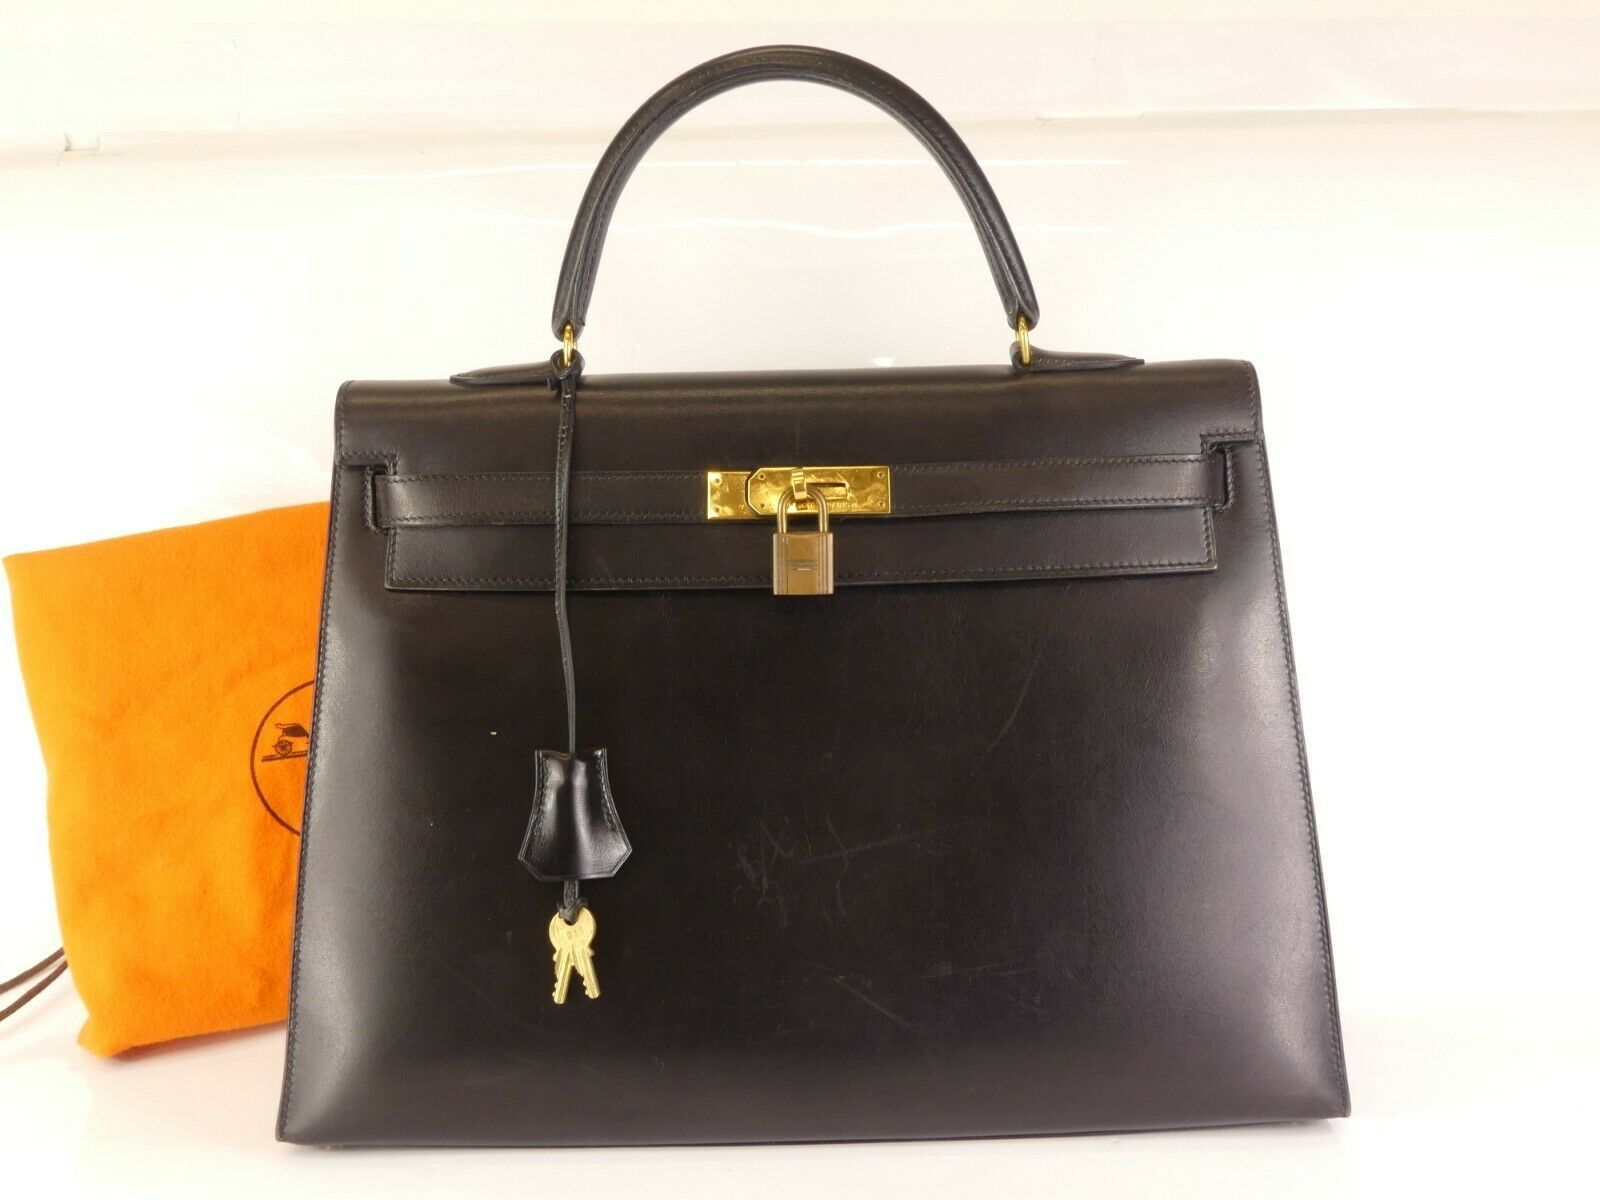 864c16d15914 rk810 Auth HERMES KELLY 35 Out Stitch Black Box Calf Leather Hand ...